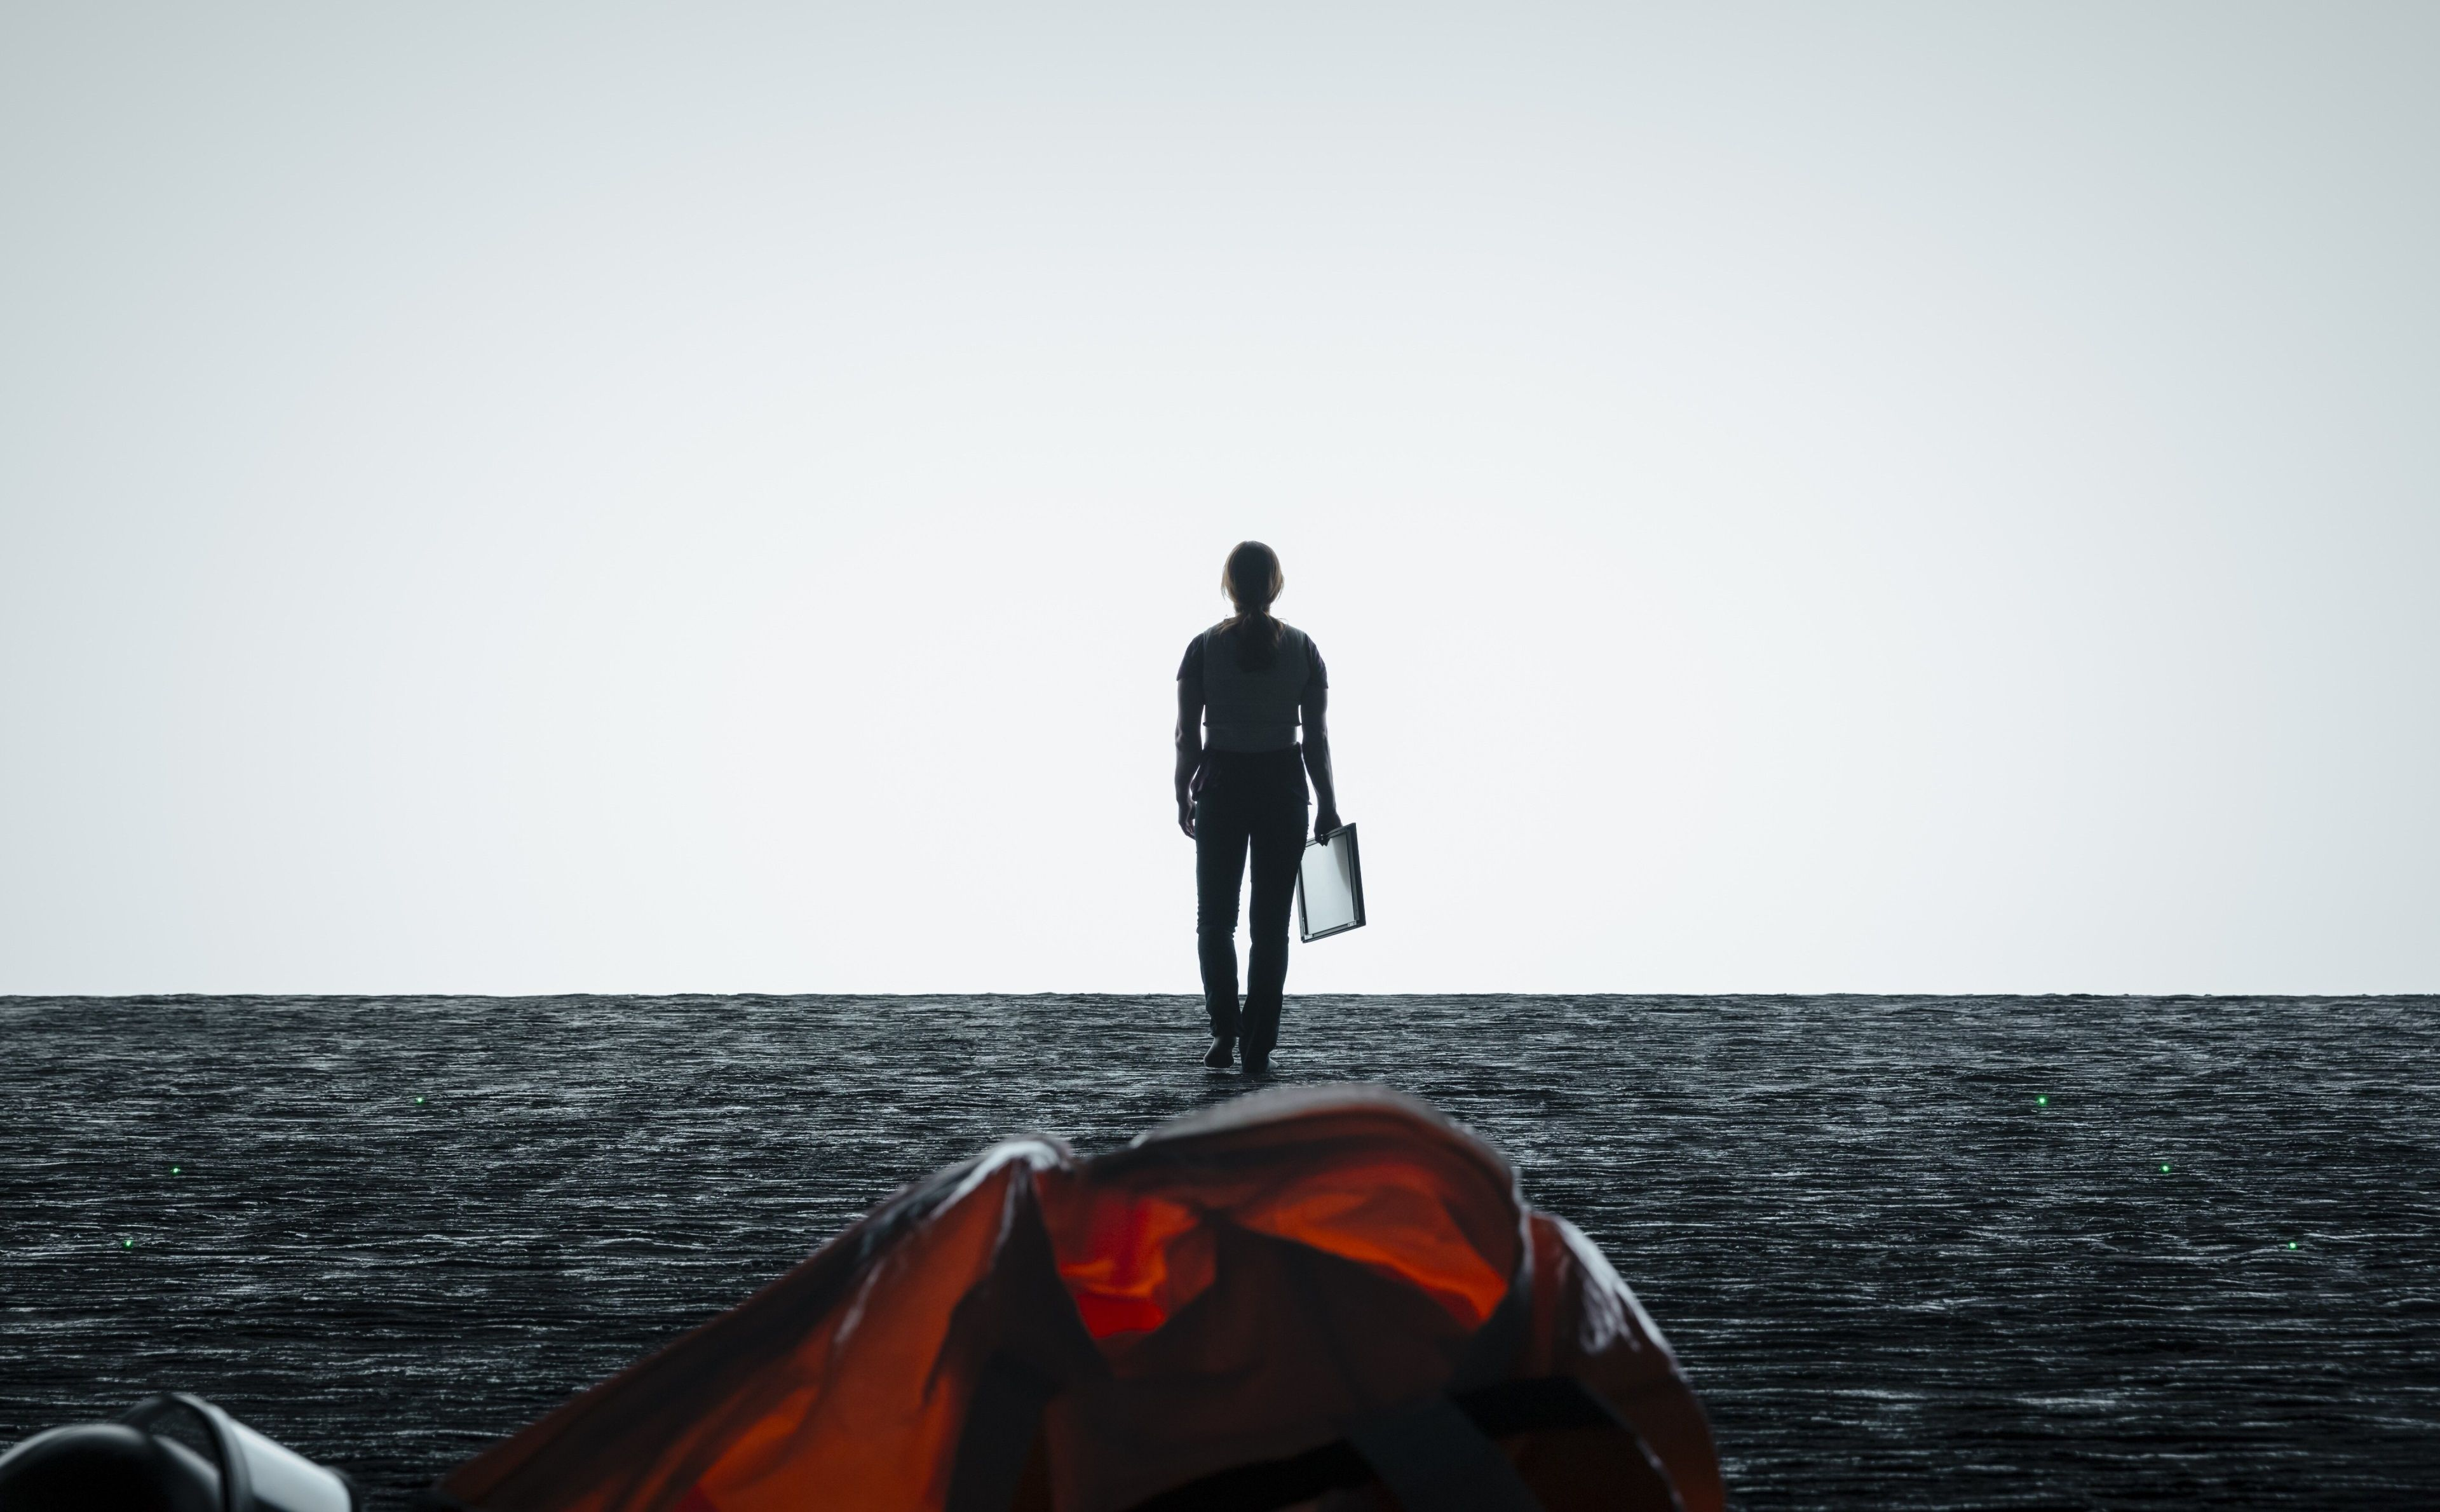 3840x2380 Arrival 4k Background Hd Wallpaper Arrival Movie Cinematography The Best Films